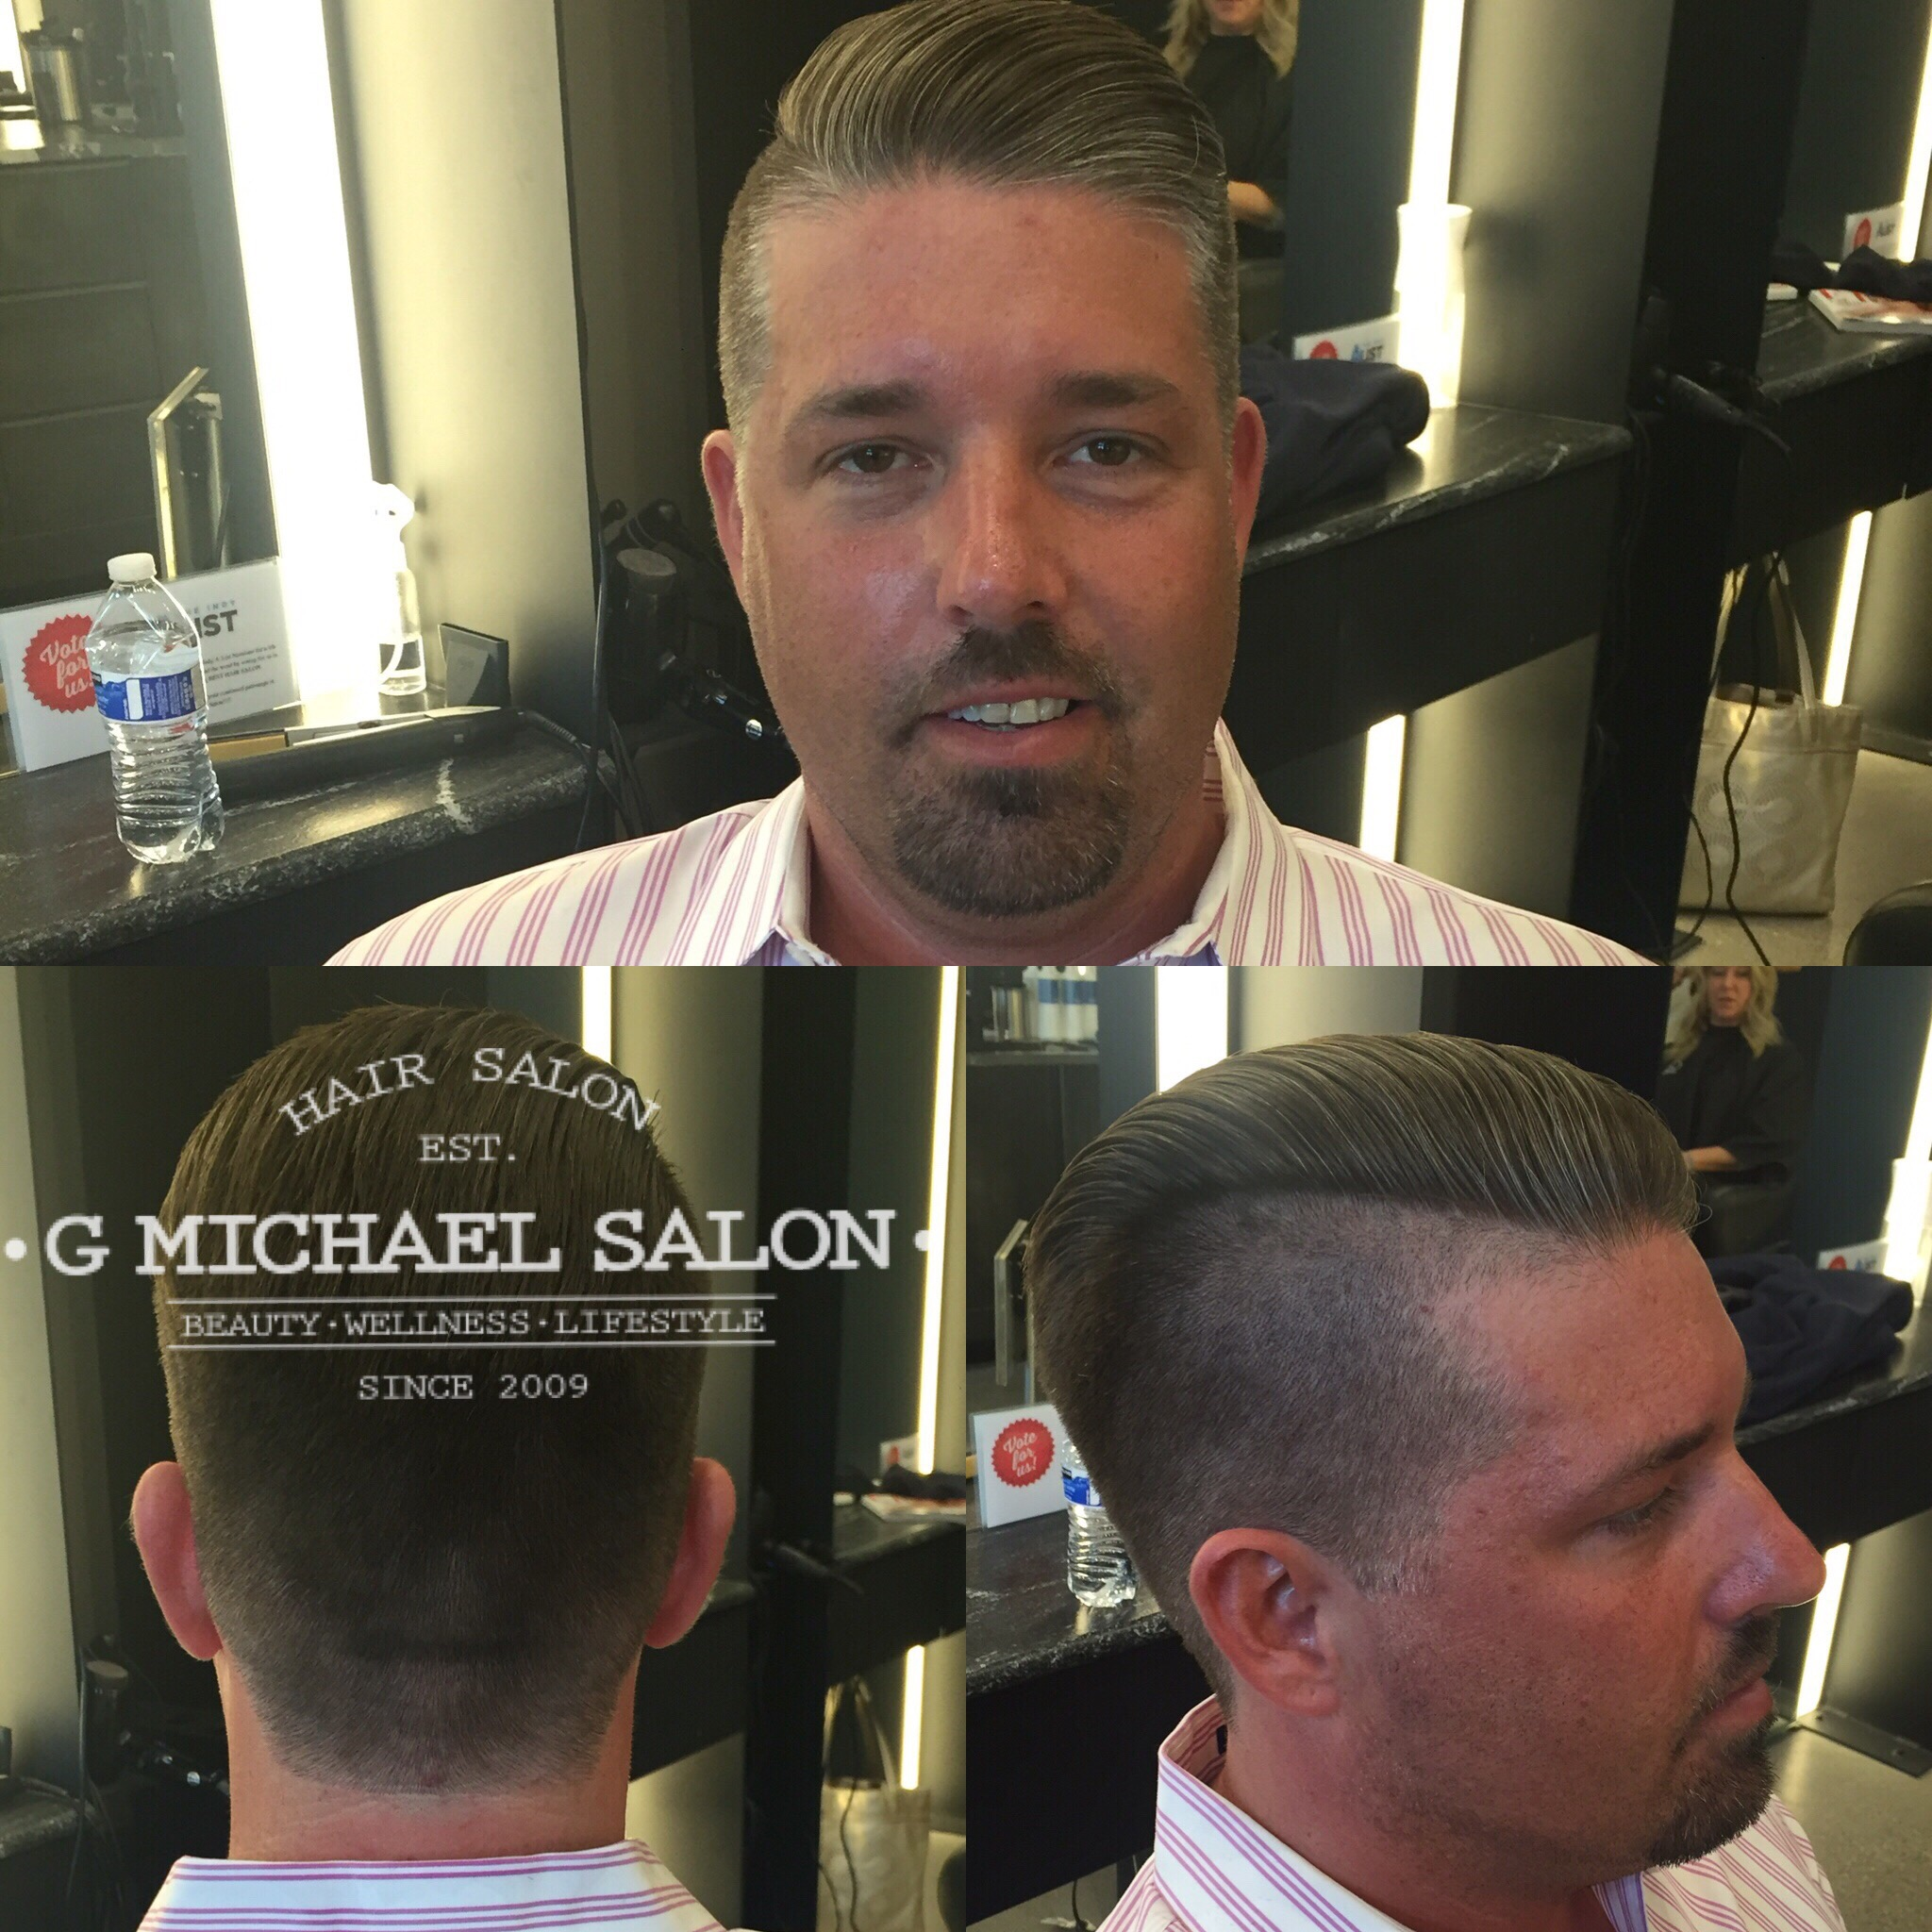 Best Mens Haircuts In Indianapolis By G Michael Salon 1243182